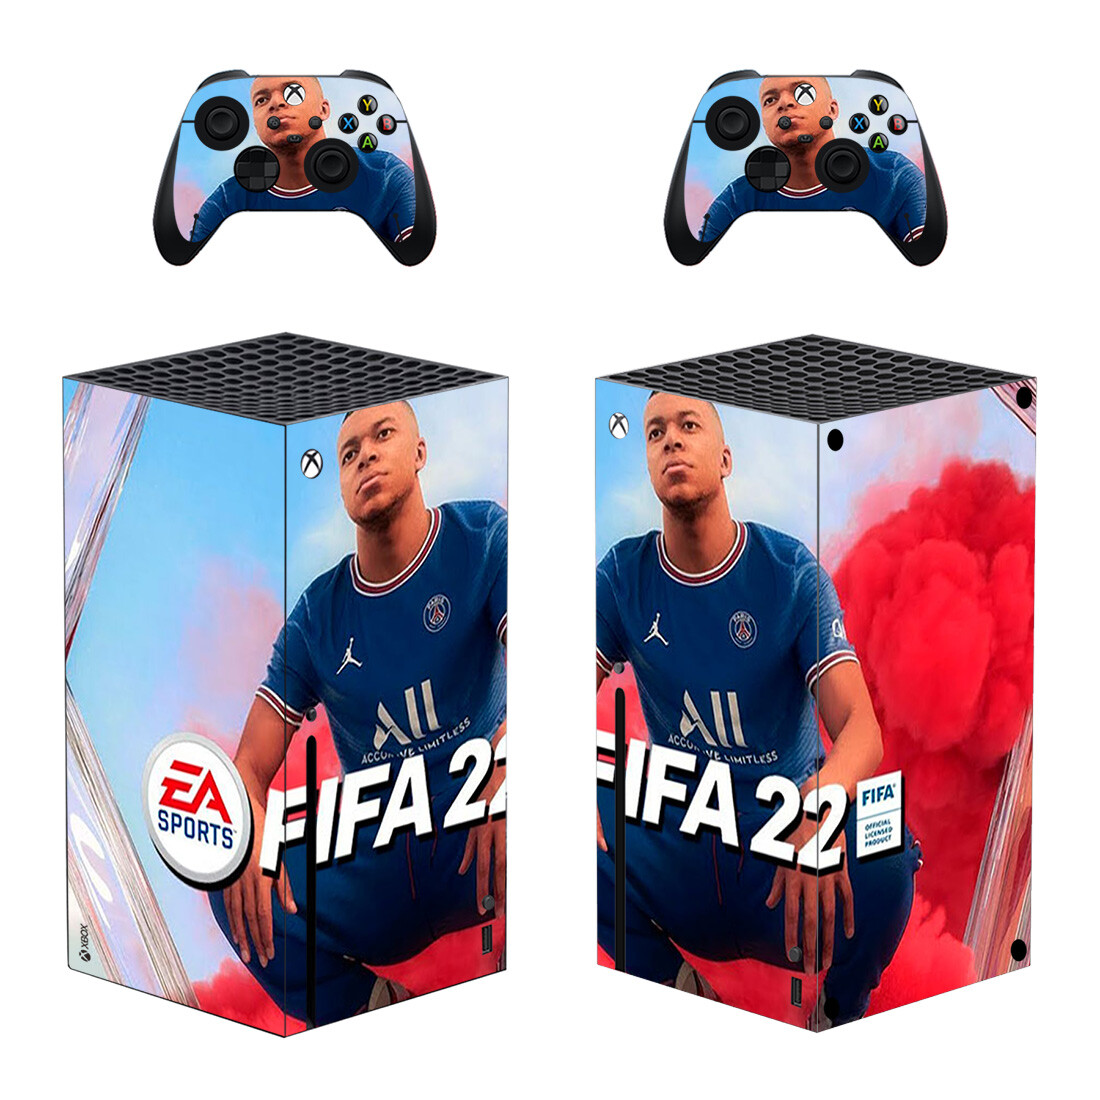 FIFA 22 Skin Sticker For Xbox Series X And Controllers